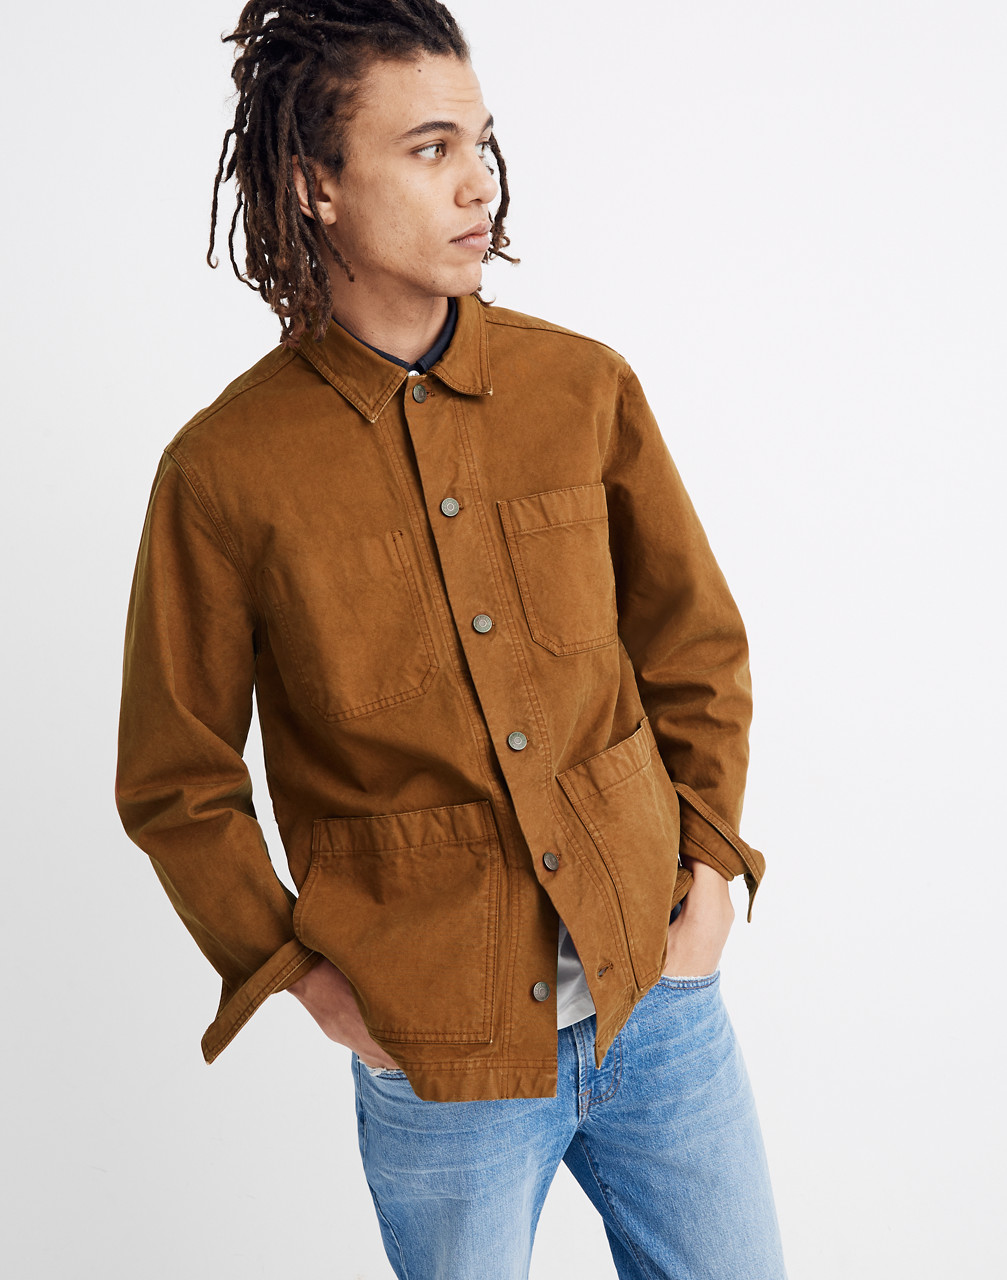 Men's Vintage Jackets & Coats Canvas Chore Jacket $148.00 AT vintagedancer.com